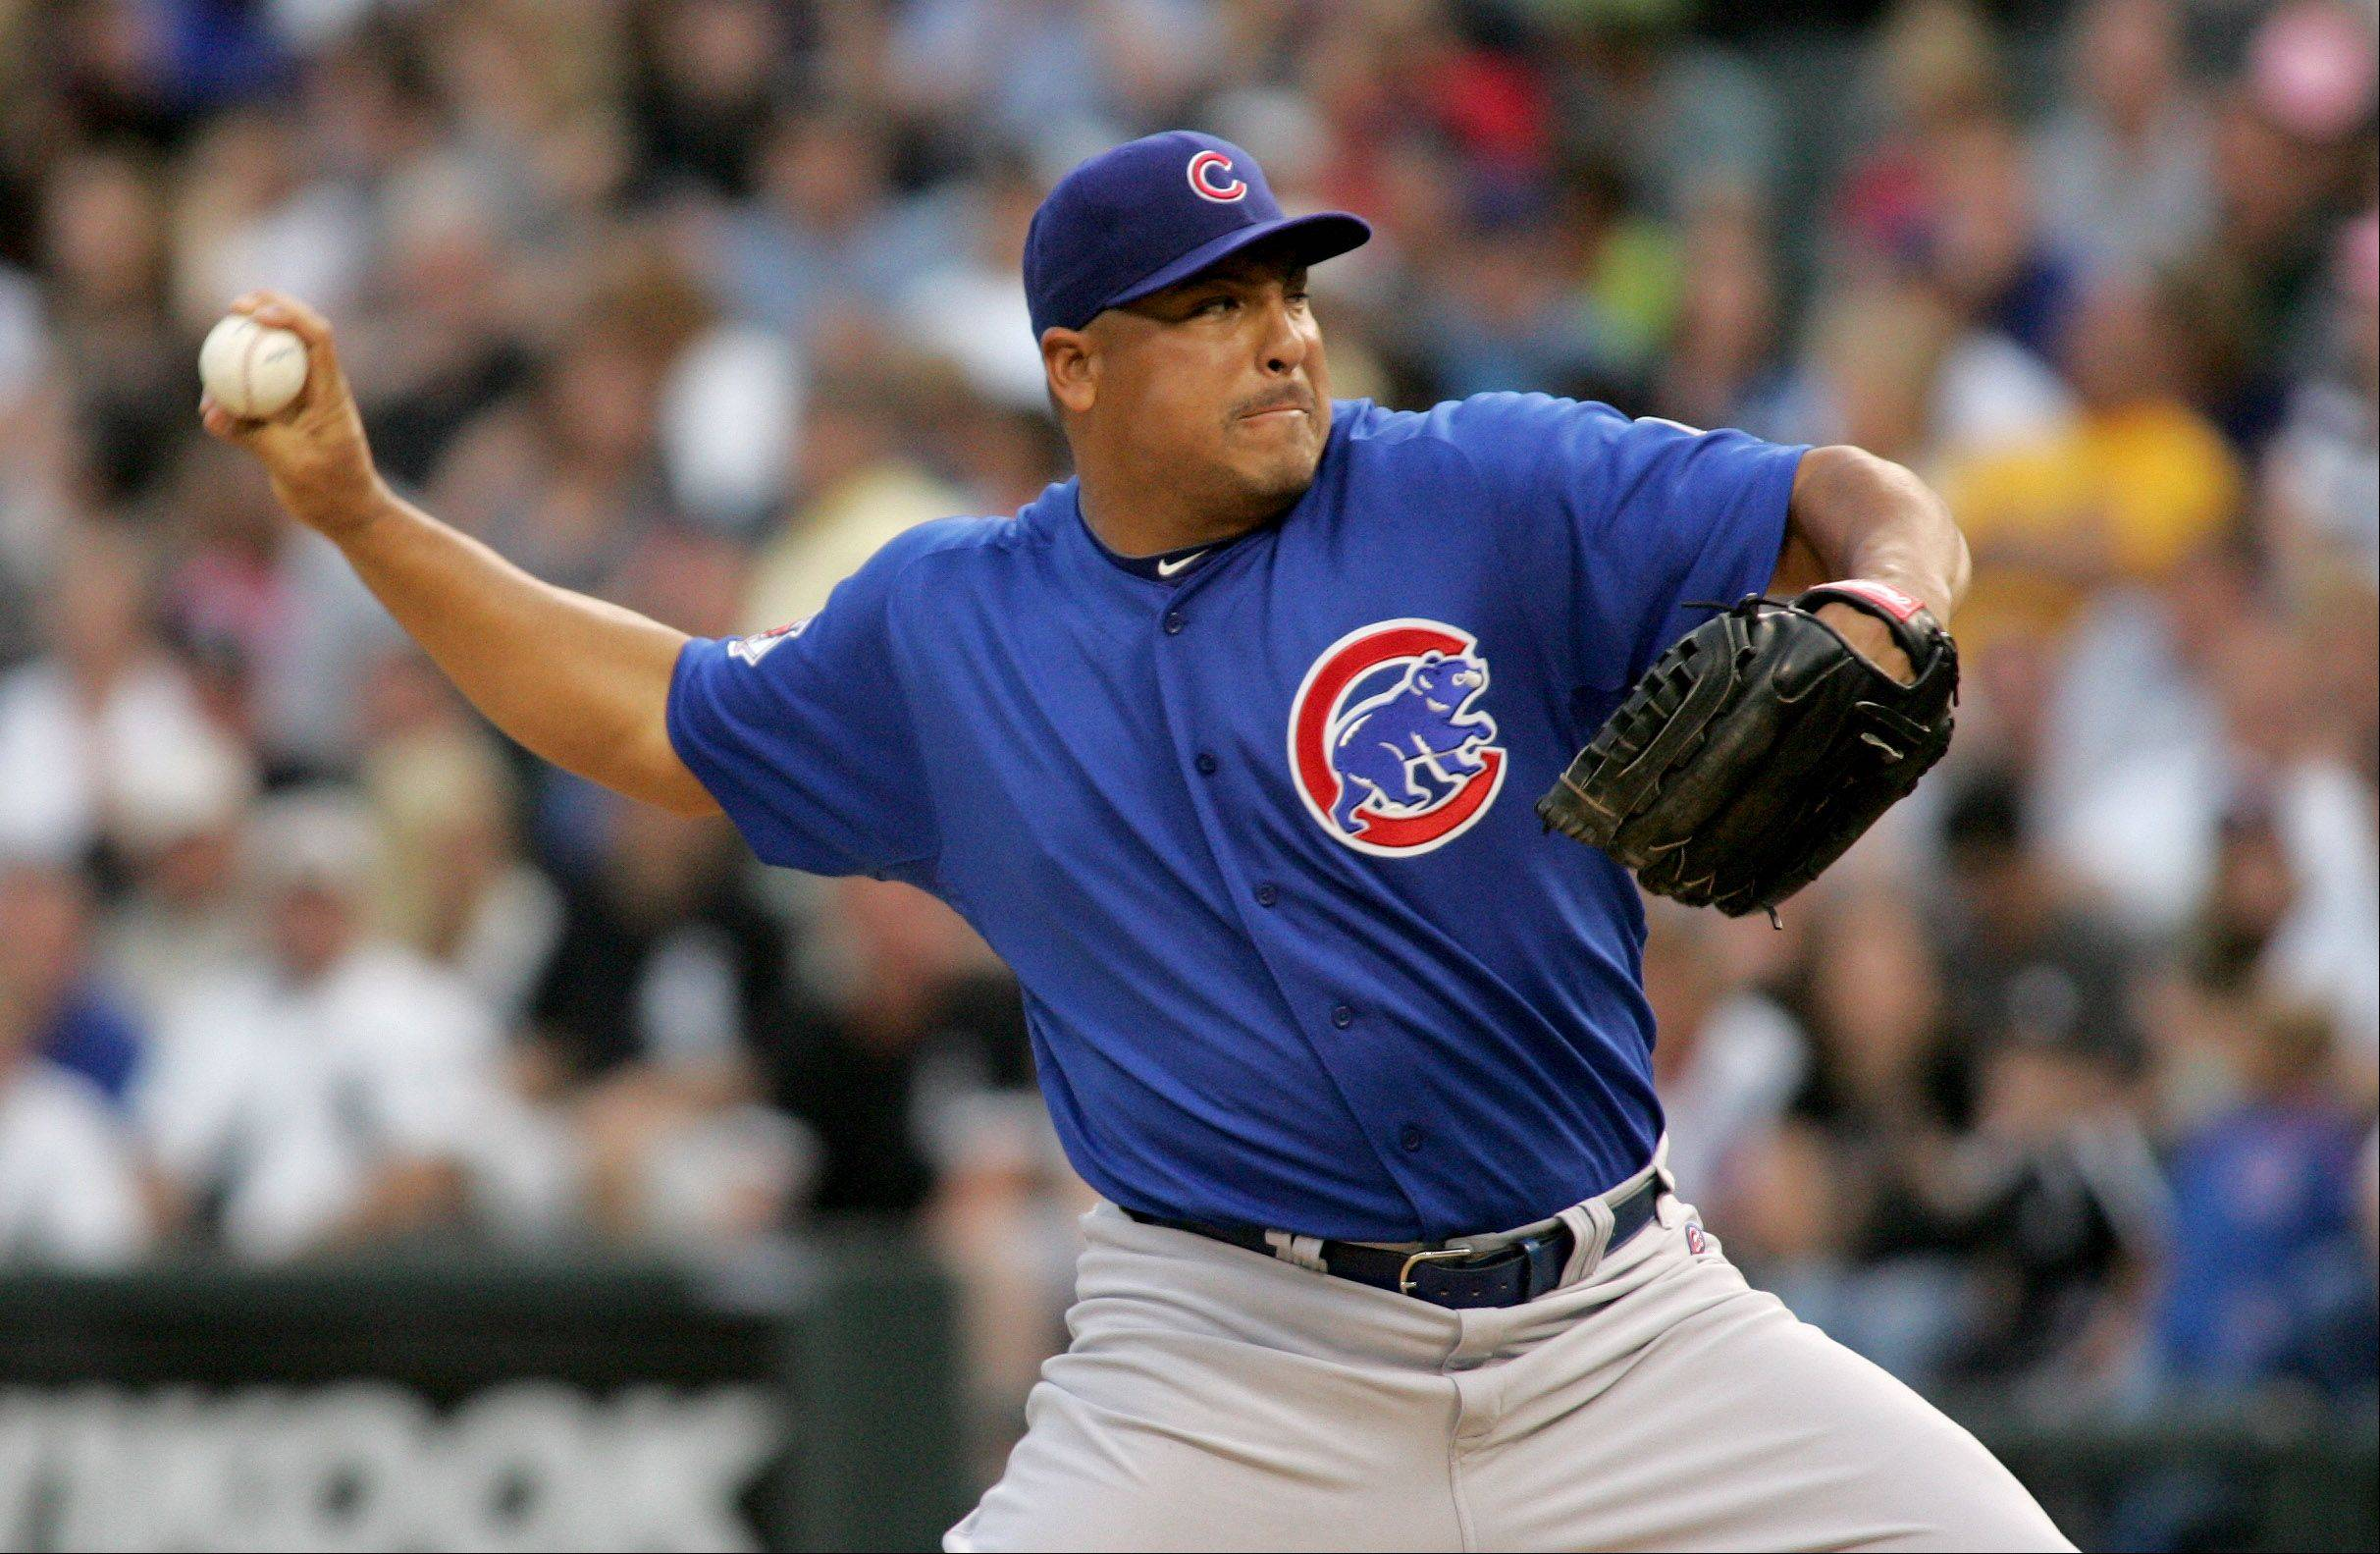 Carlos Zambrano pitching against the White Sox Monday night.